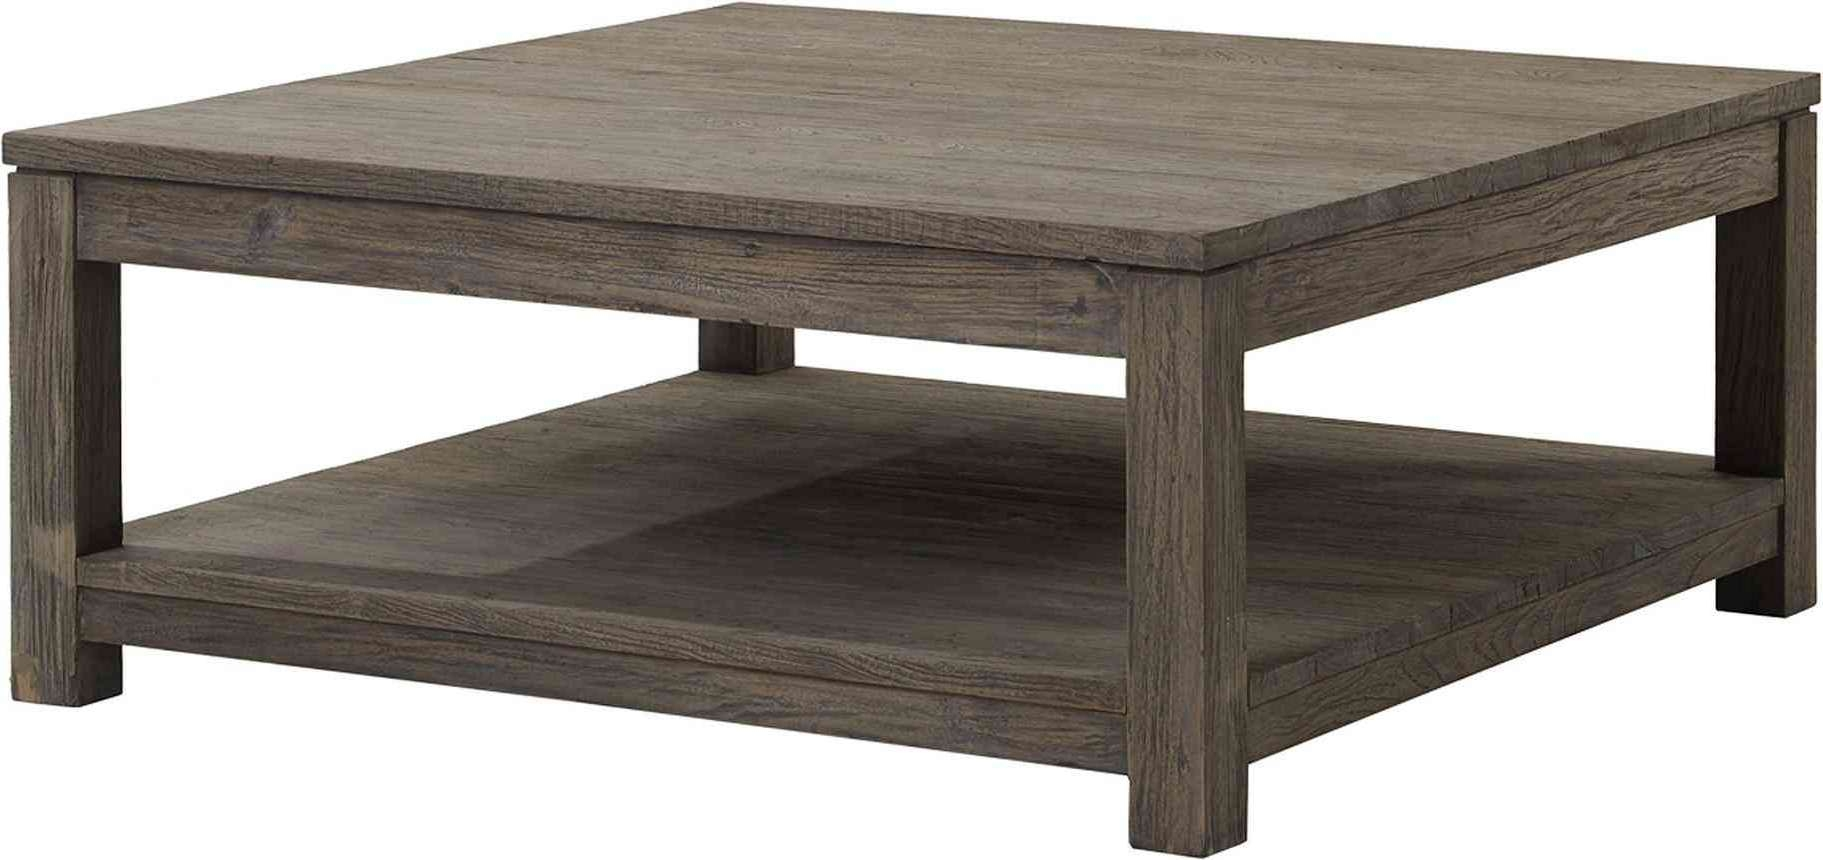 Most Up To Date Large Square Coffee Tables Within Coffee Tables : Square Coffee Tables Living Room Table Cheap For (View 15 of 20)